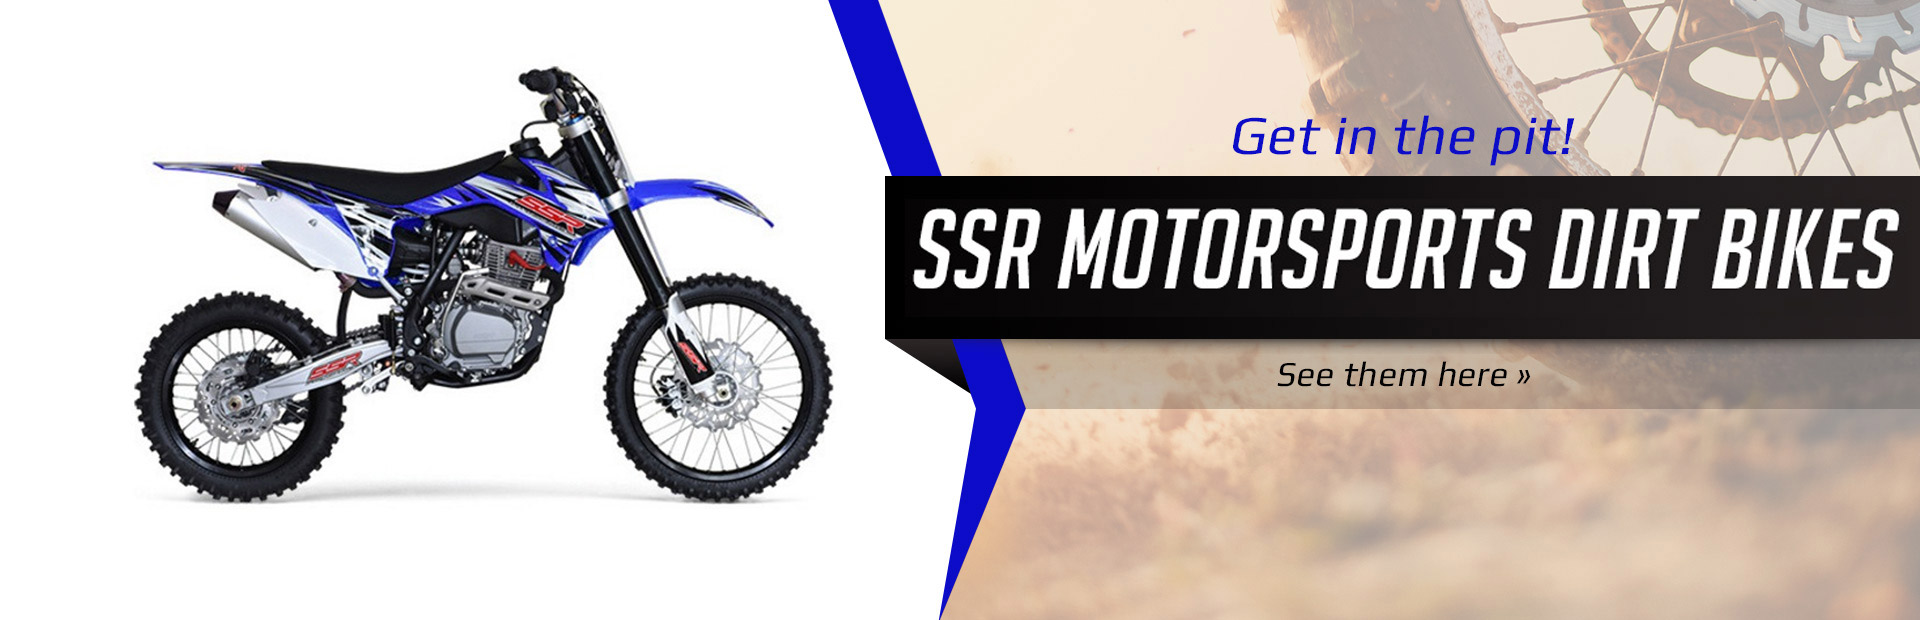 2018 SSR Motorsports Dirt Bikes: Click here to view the models.